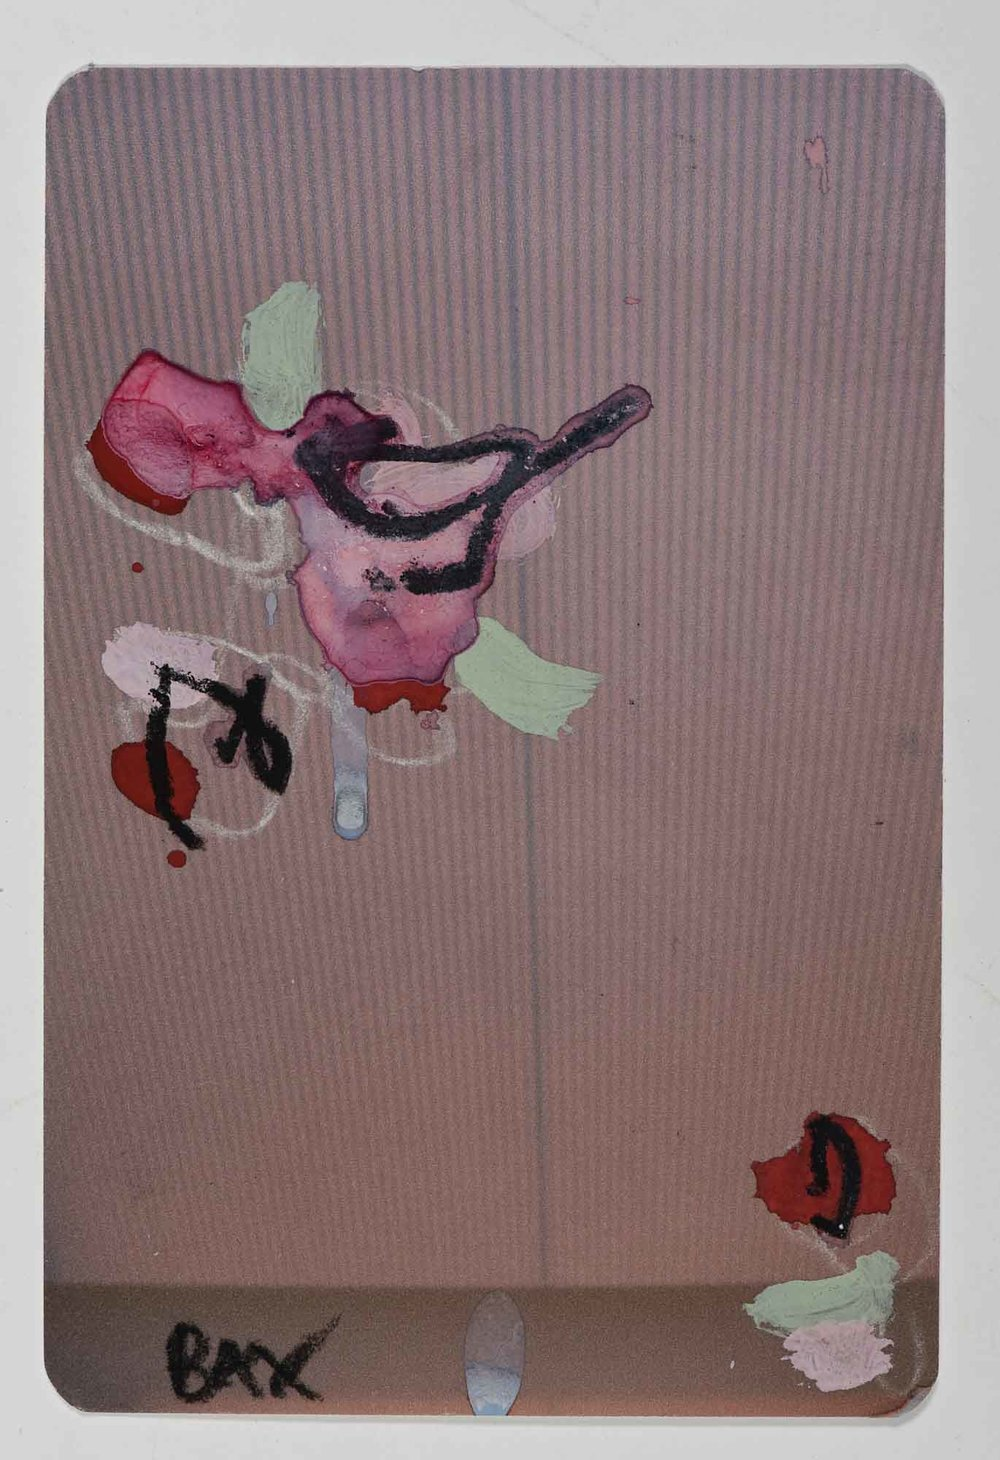 Matthew Bax,  Sample Afternoon Delight 2,  2012, acrylic, charcoal, pencil, wax crayon, expresso on paper, 15 x 10cm